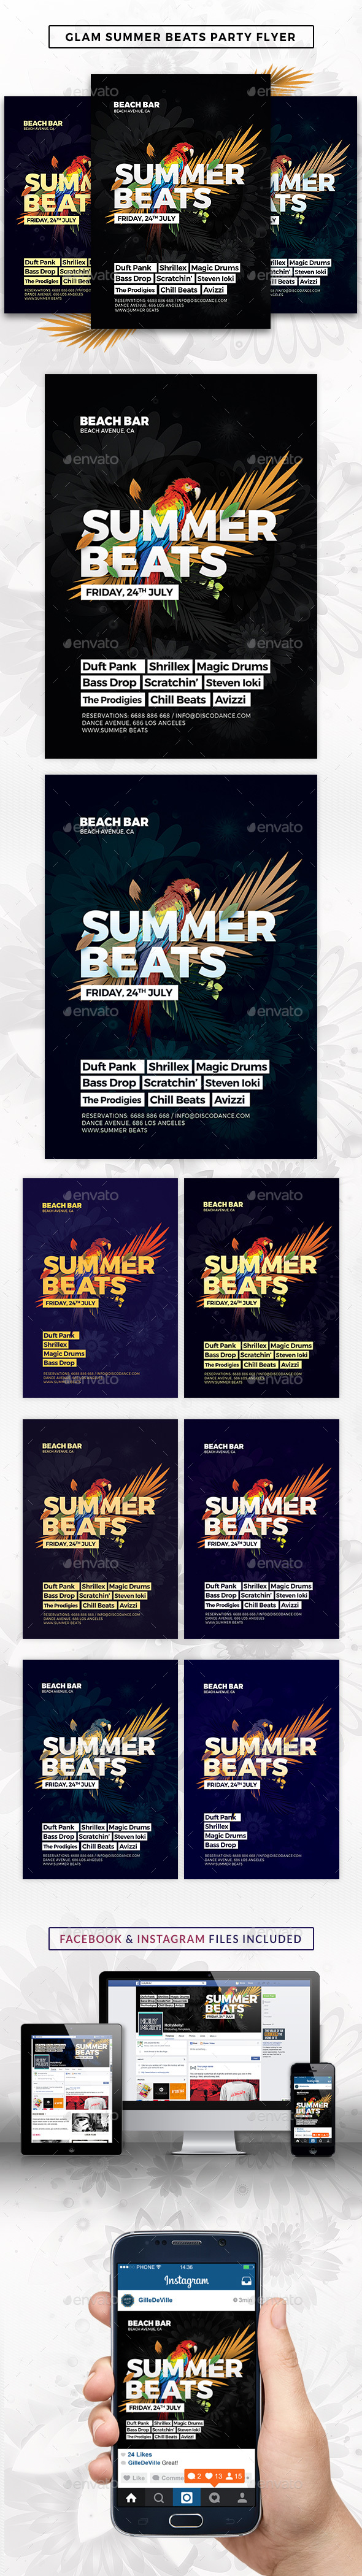 Glam Summer Beats Flyer Template - Events Flyers